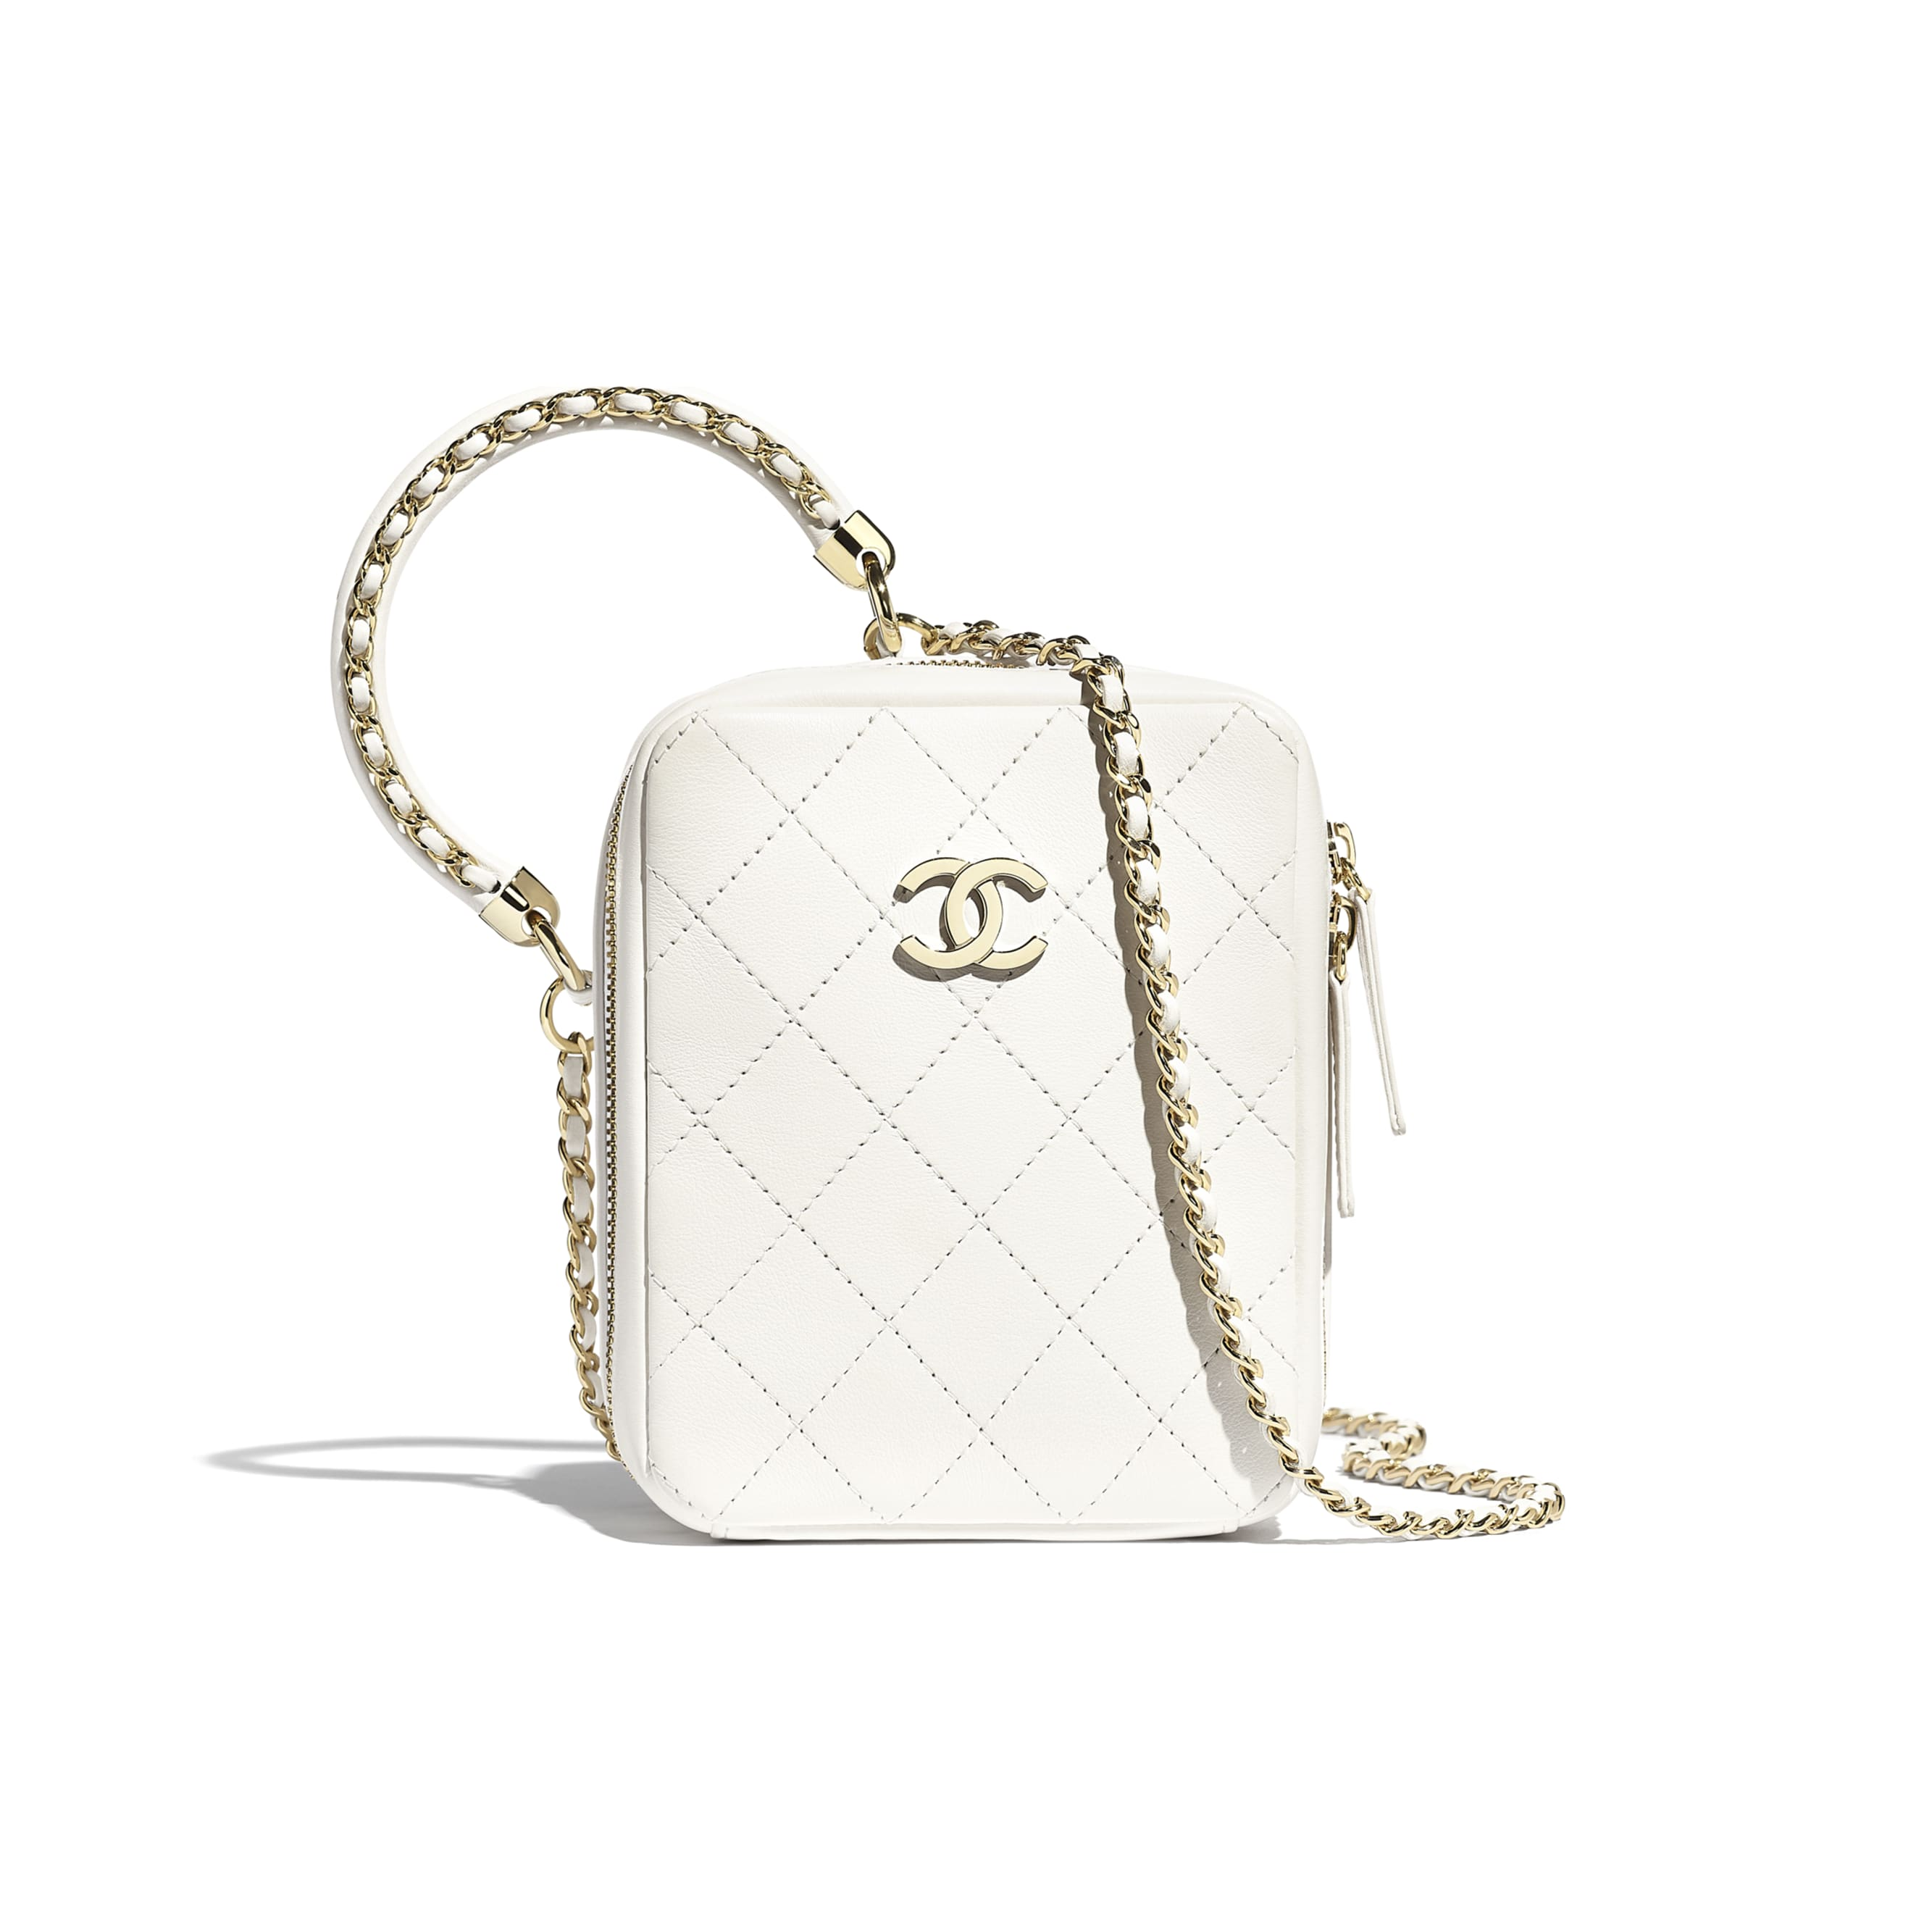 Vanity Case - White - Calfskin & Gold-Tone Metal - CHANEL - Default view - see standard sized version